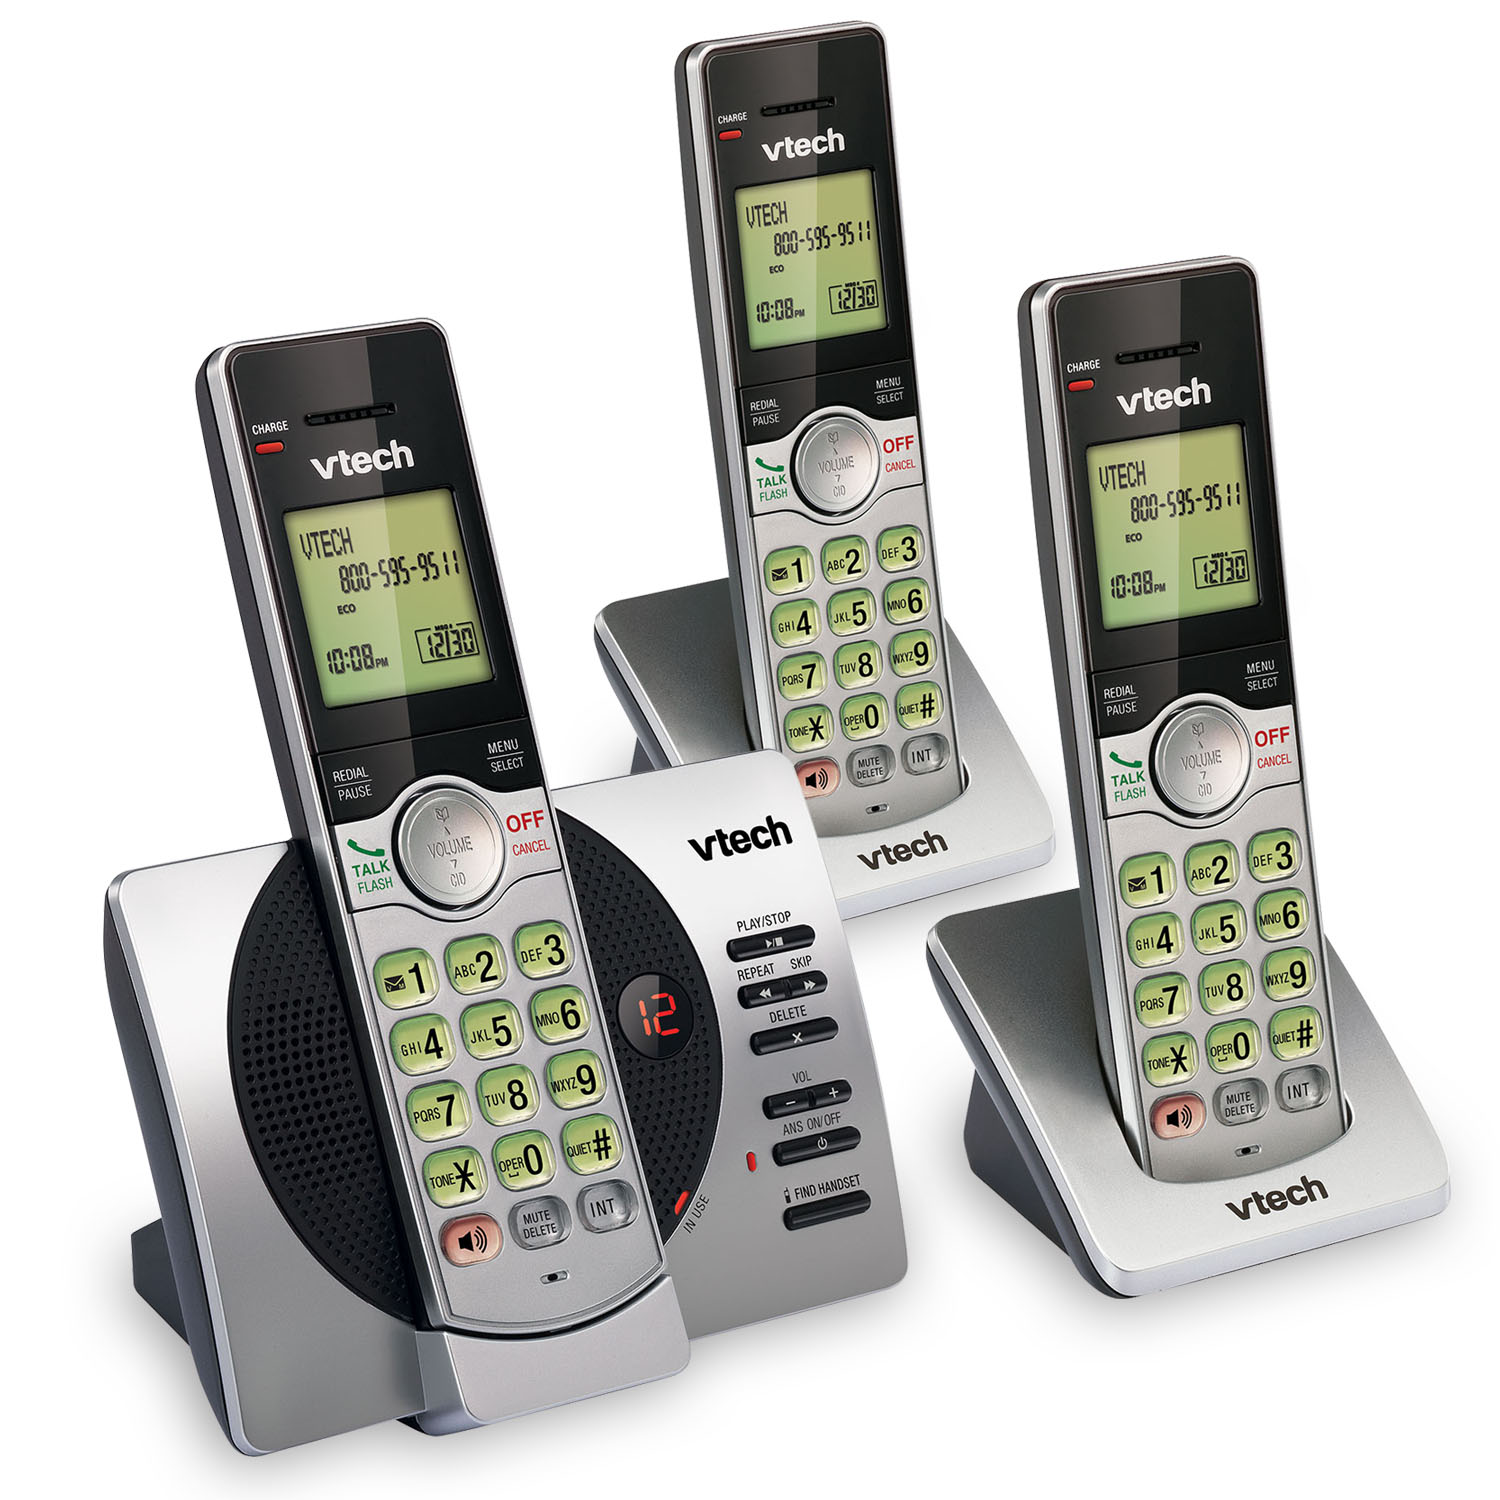 cs6929 3 vtech cordless phones. Black Bedroom Furniture Sets. Home Design Ideas